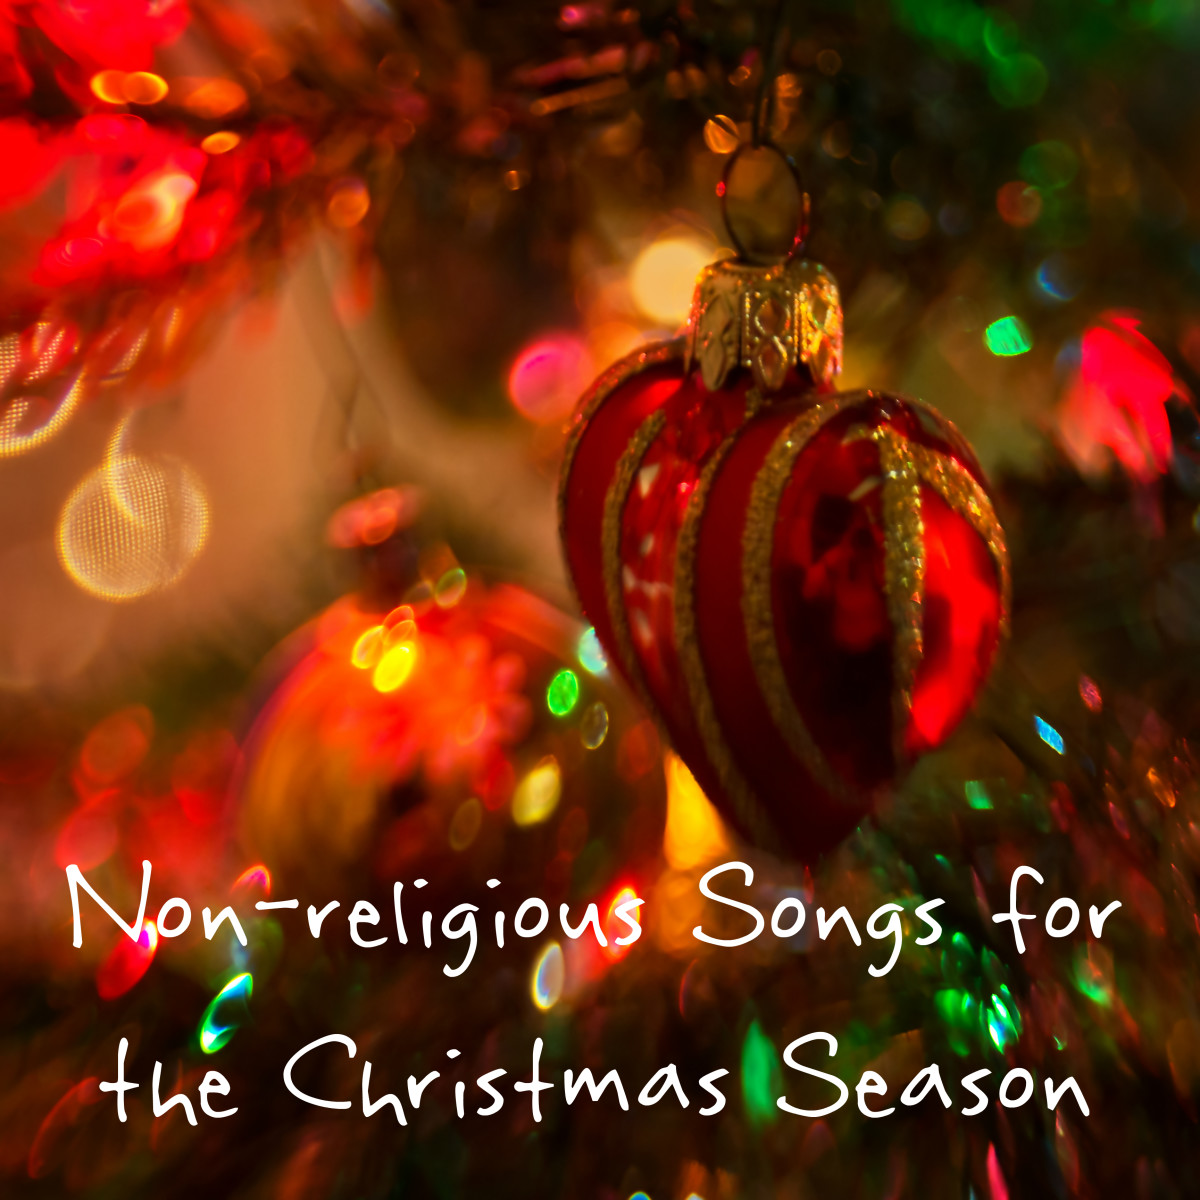 131 Non-Religious Christmas Songs for Your Holiday Playlist